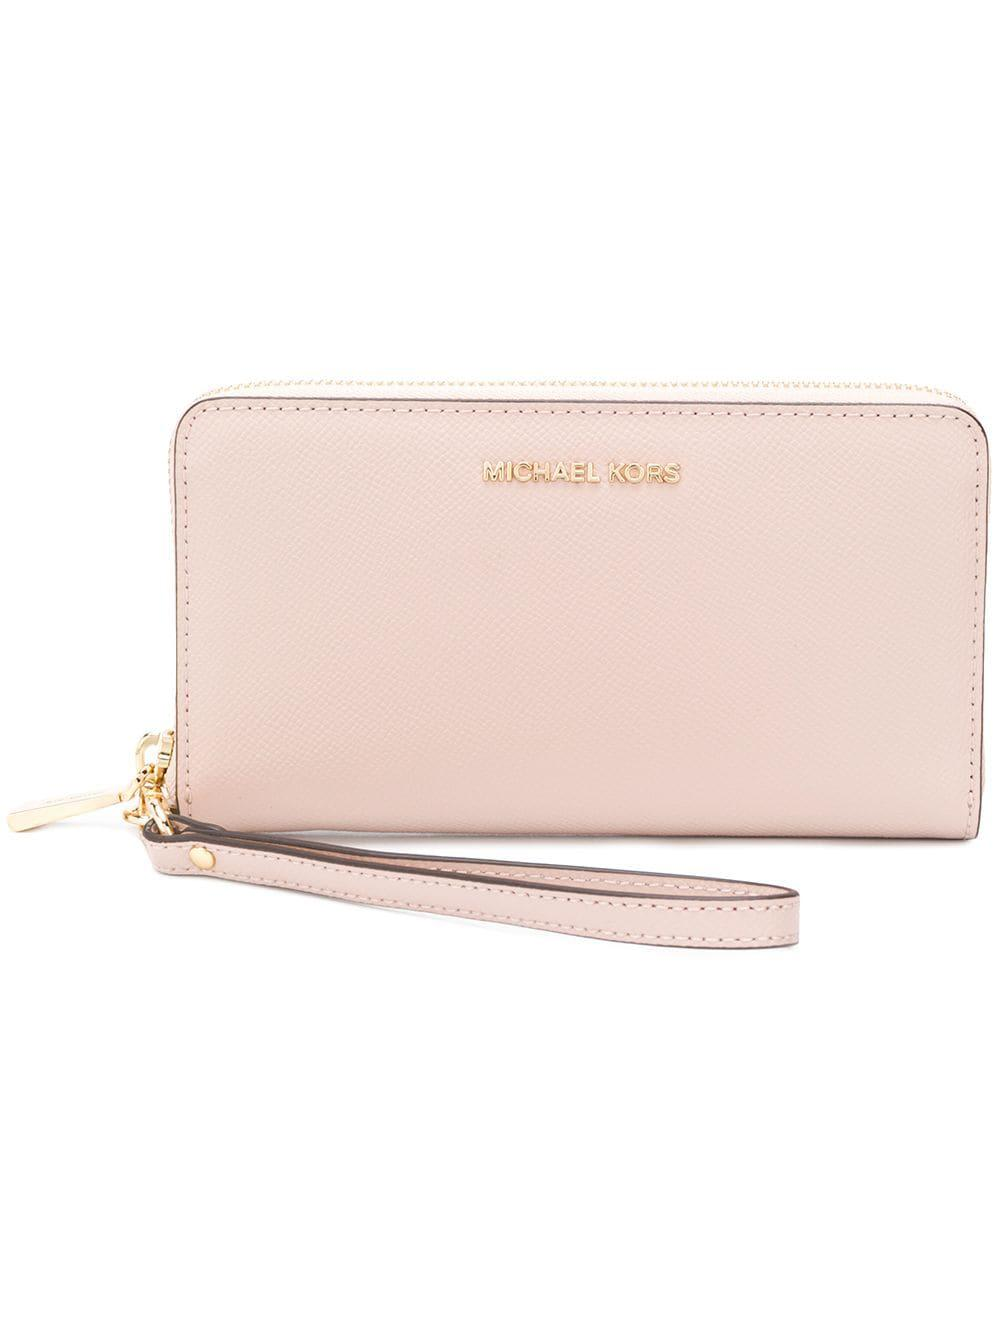 c776fe00e321 Michael Michael Kors Leather Wristlet Pouch in Pink - Lyst